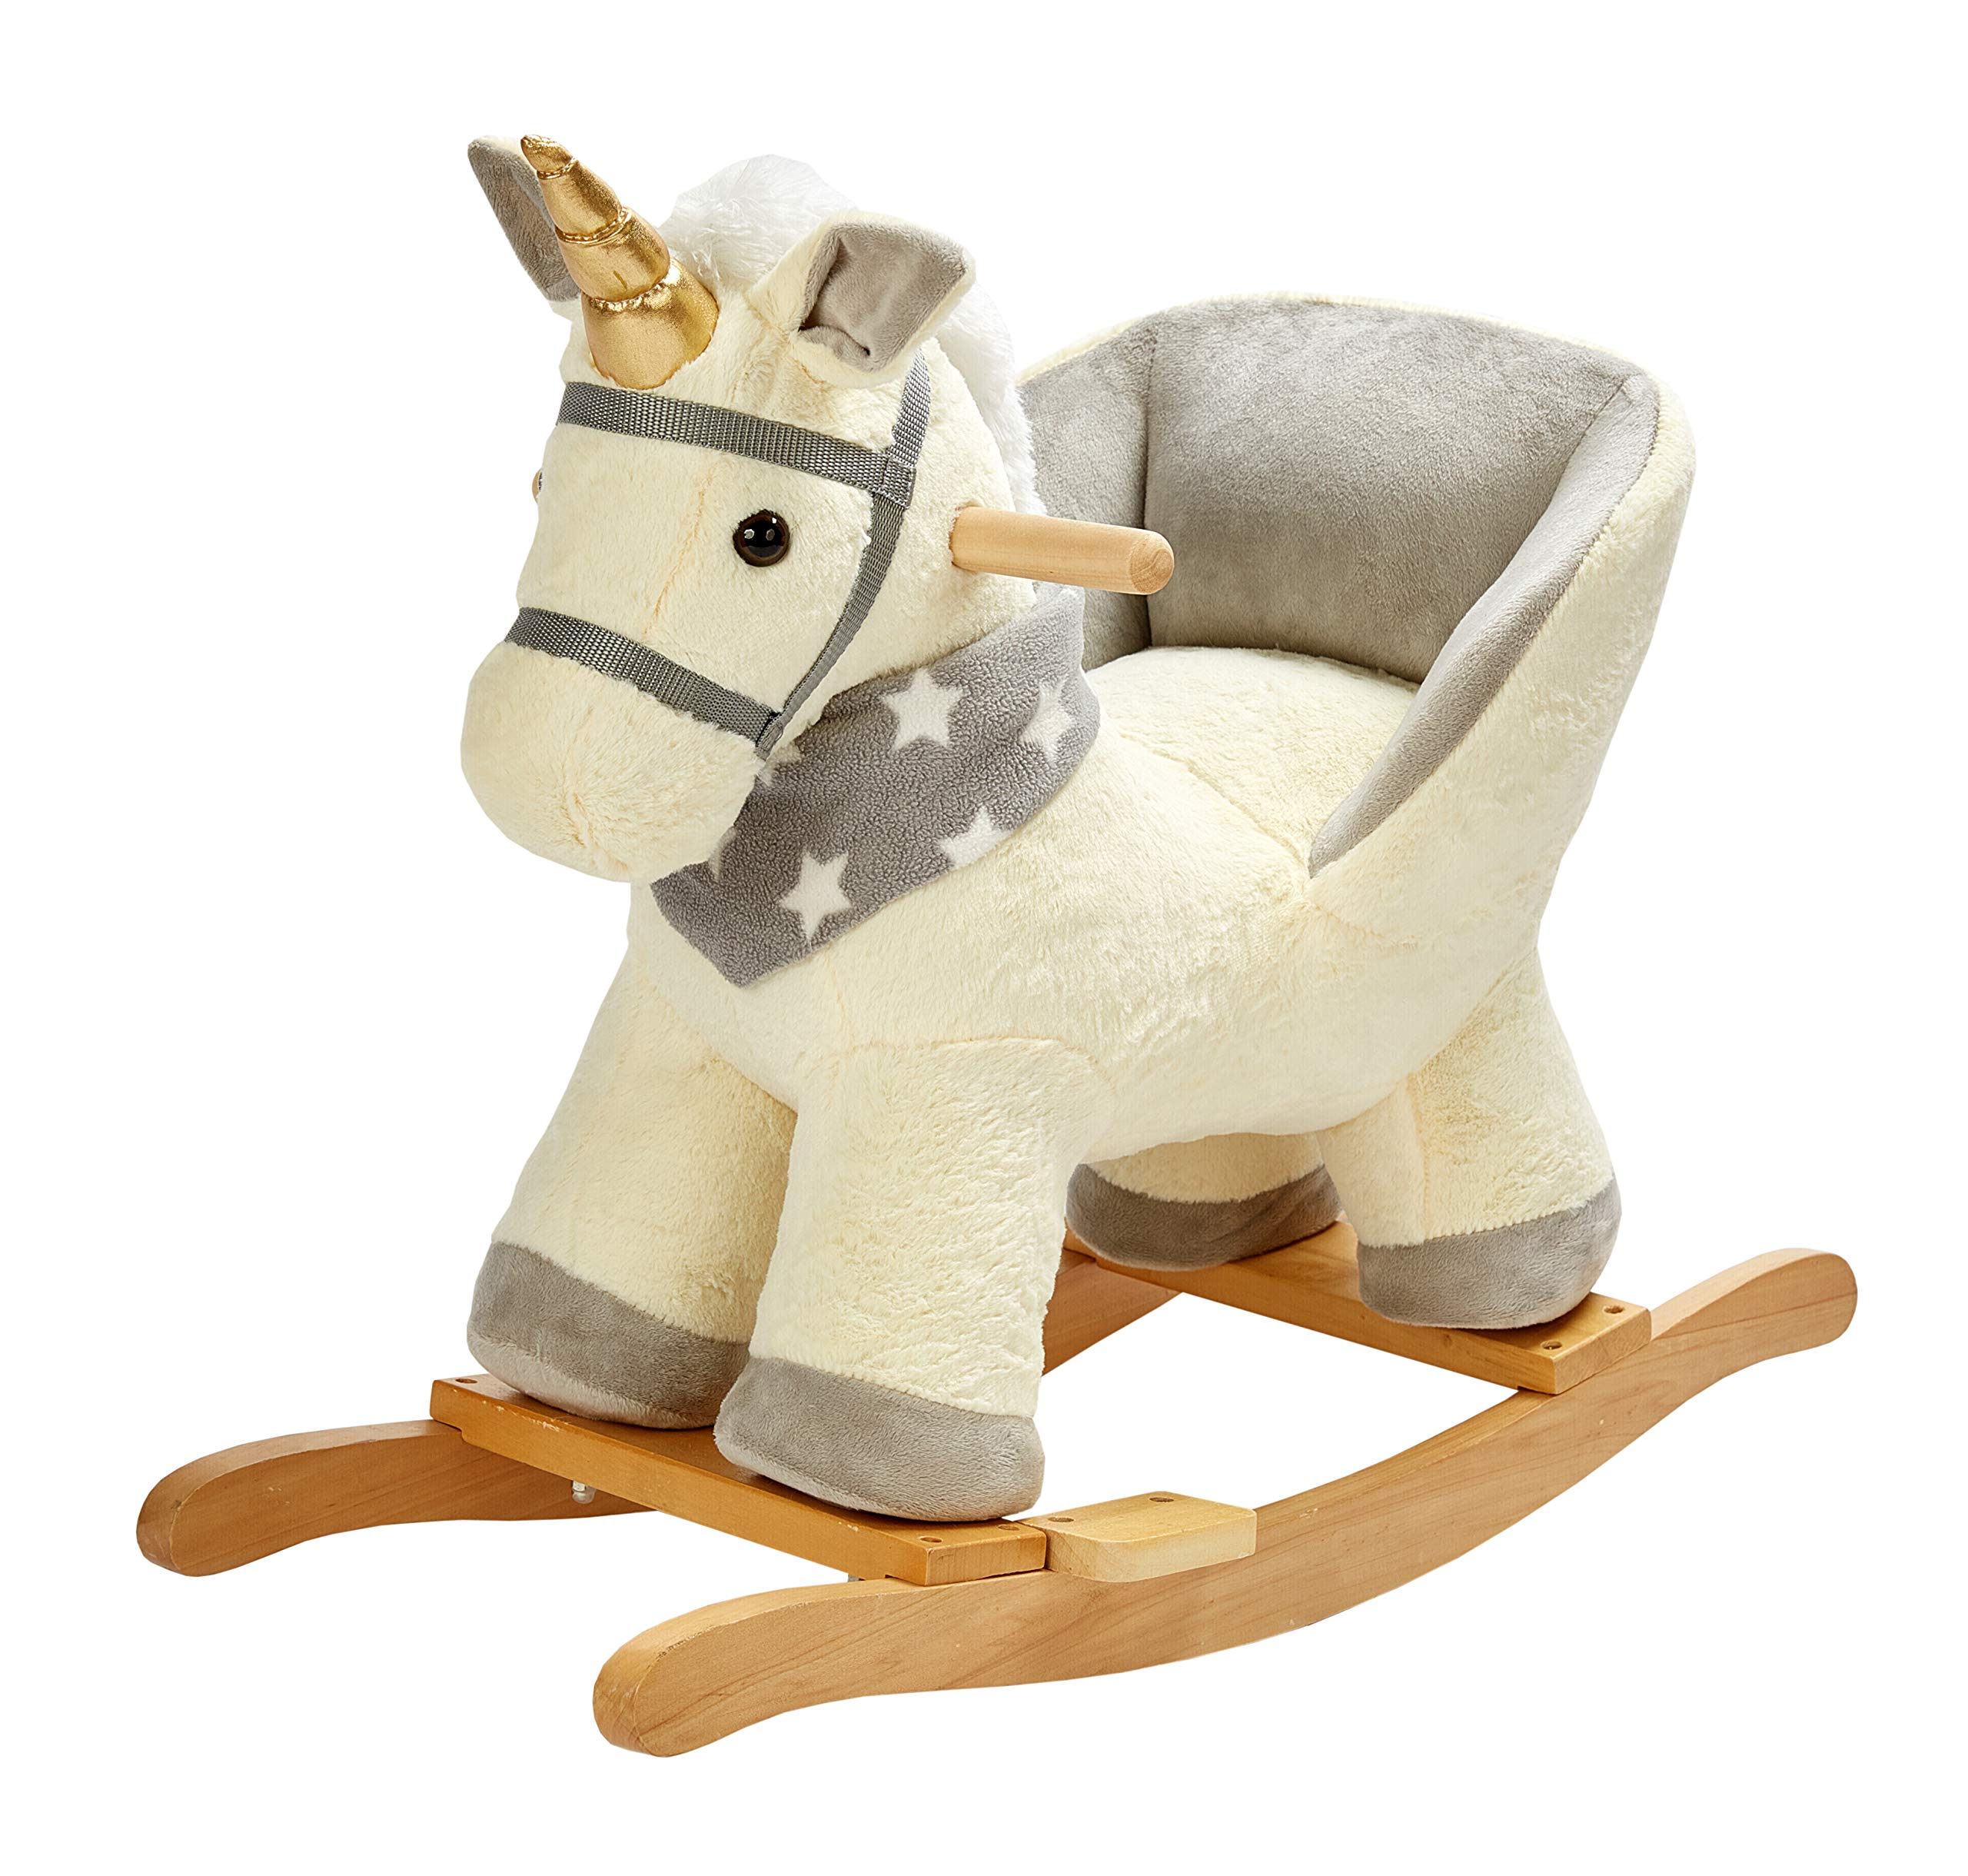 Rock My Baby Baby Rocking Horse Unicorn With Chair Unicorn Rocker Wooden Rocking Unicorn Baby Rocker Animal Ride On For Toddlers Boys Girls Age 1 Year And Up Cream Unicorn For